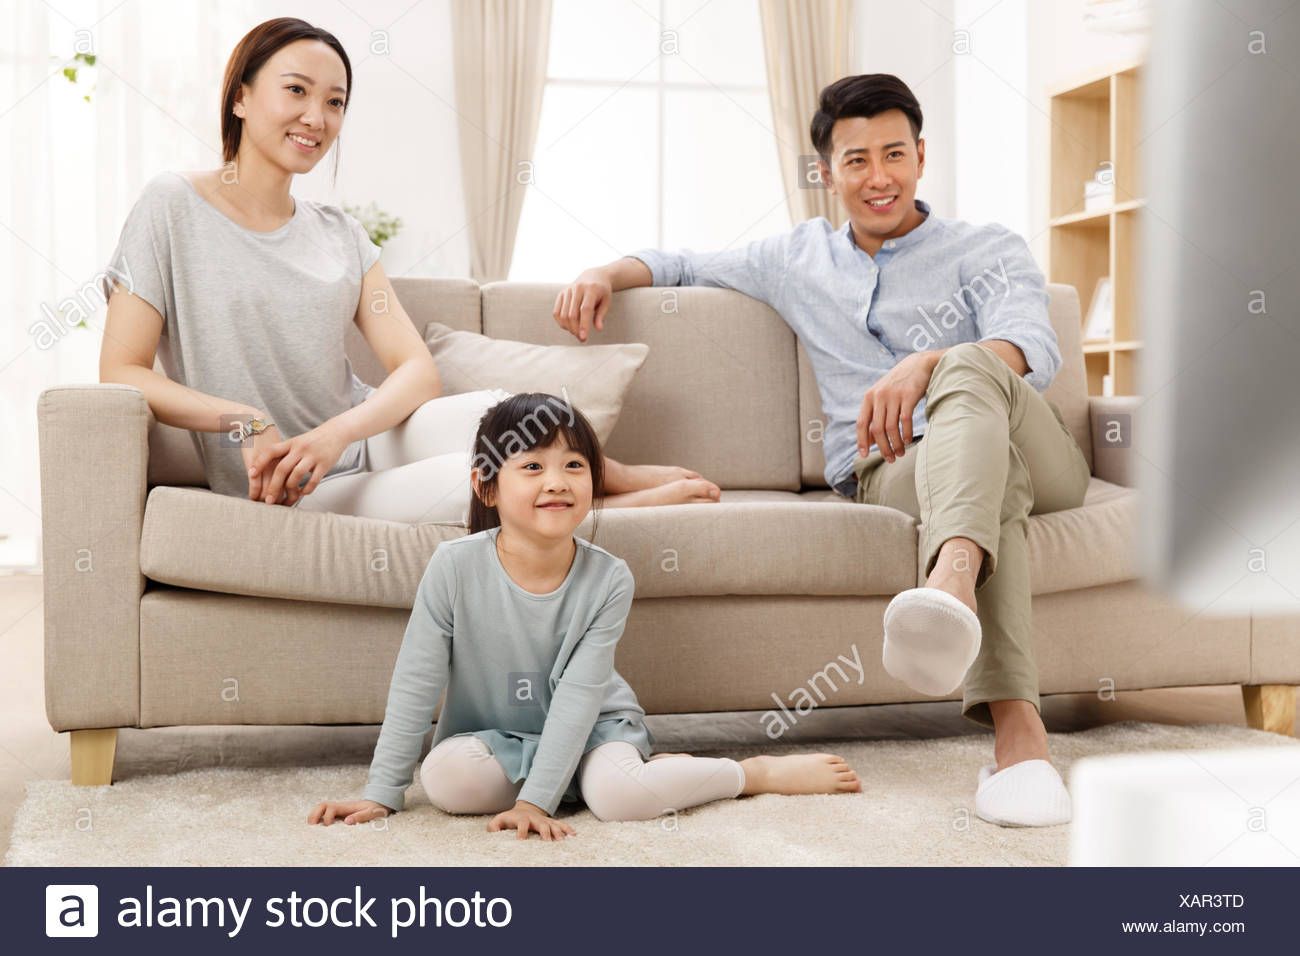 A happy family of three in the living room watching TV Stock ...